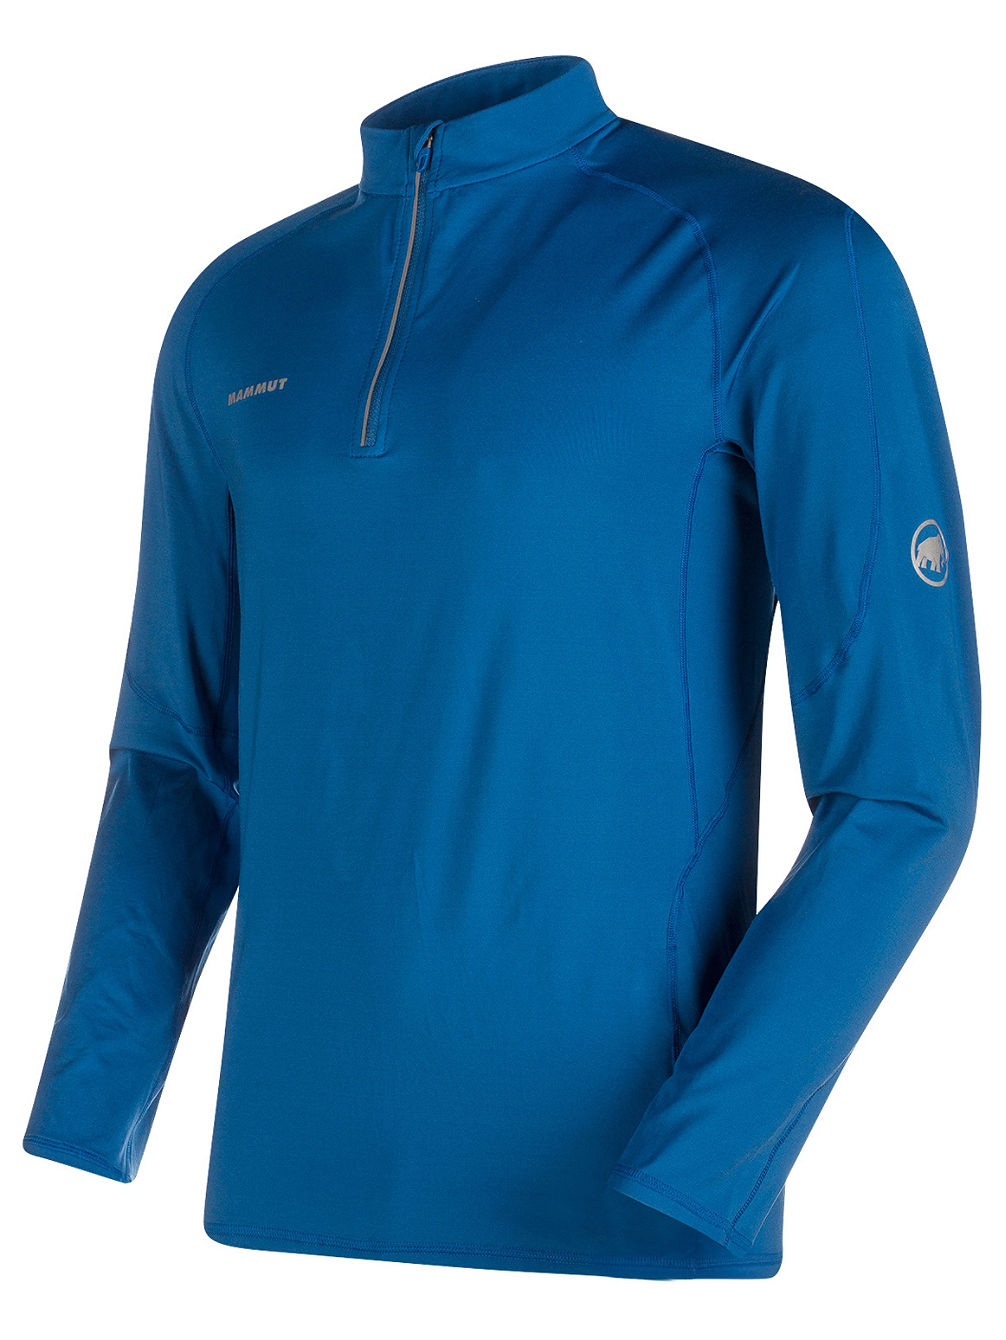 Mtr 141 Thermo Zip Tech Tee LS